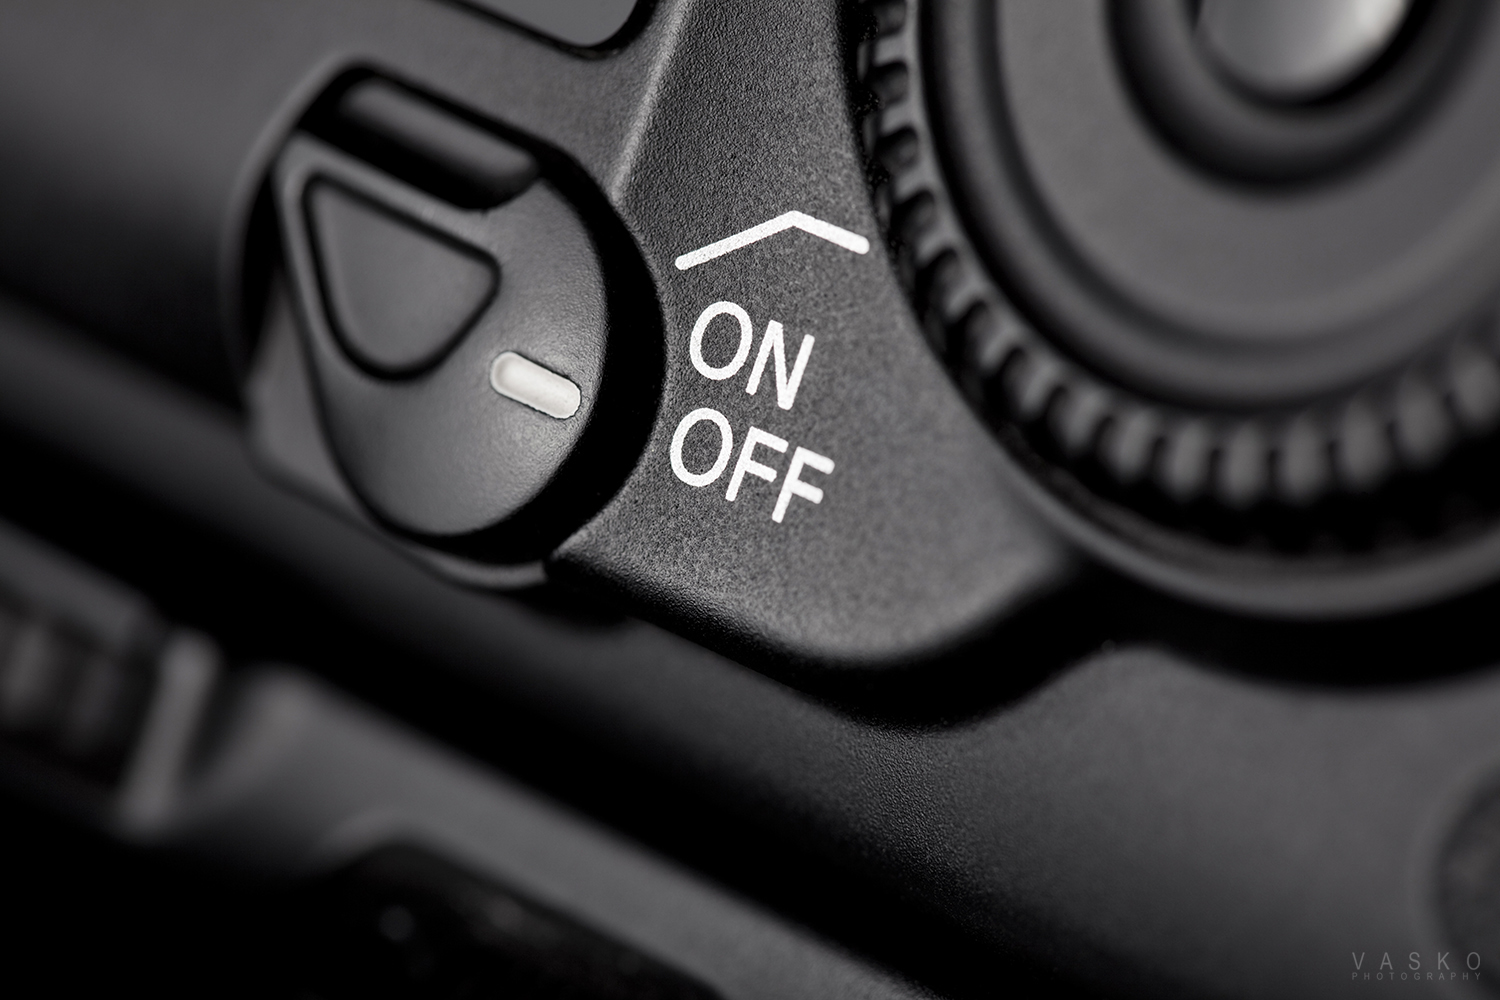 5D Classic on-off switch - Vasko Photography